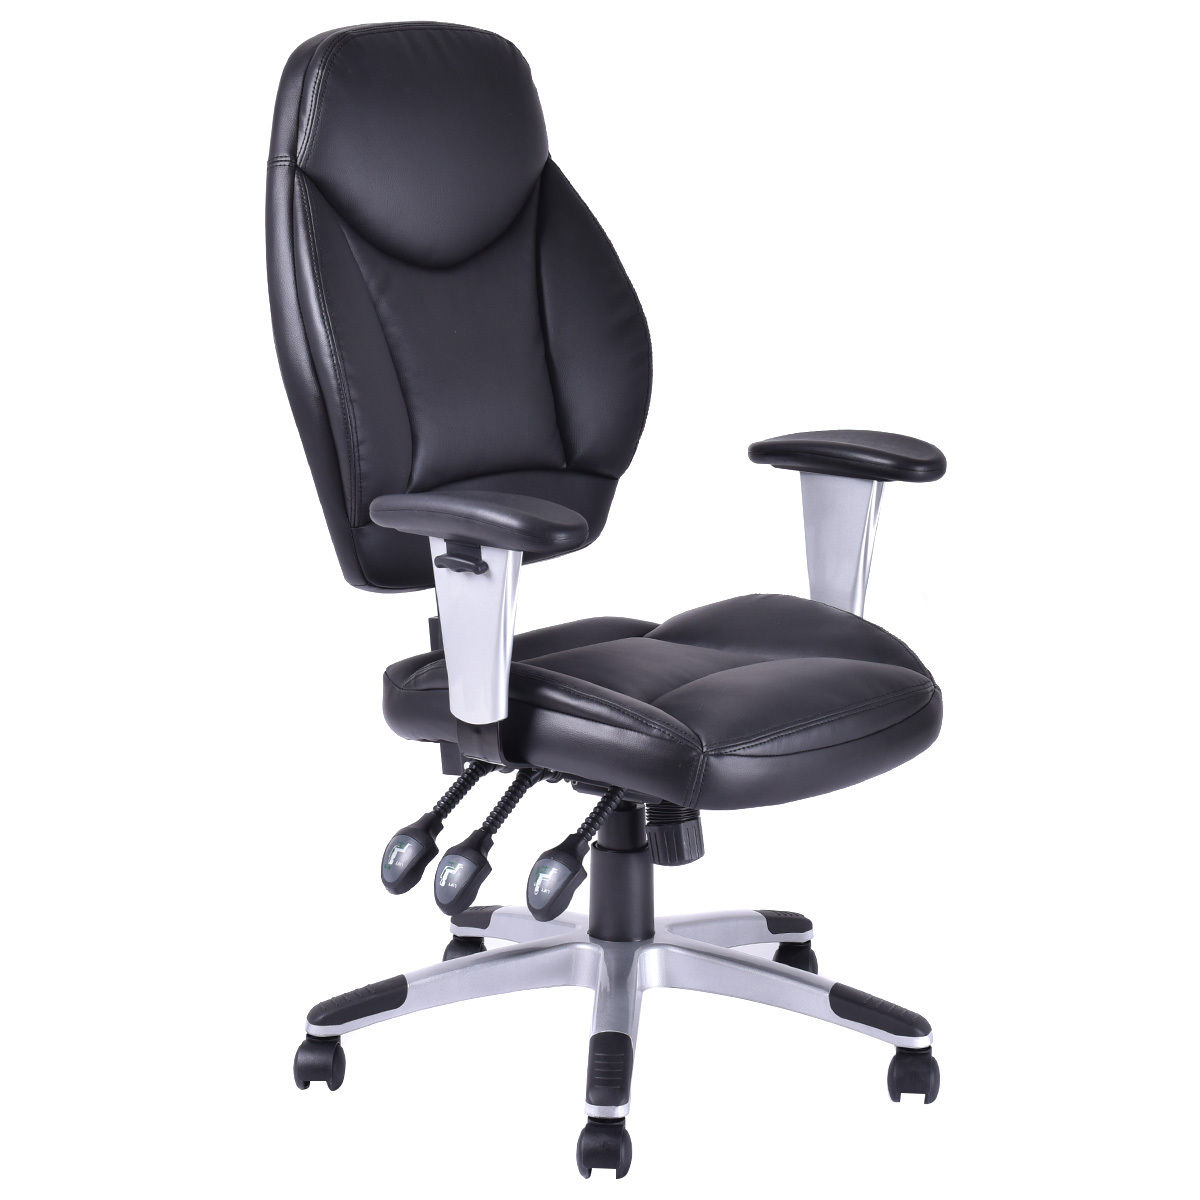 цены Giantex Modern PU Leather High Back Gaming Chair Executive Computer Desk Task Office Chair Black Swivel Office Furniture HW52712